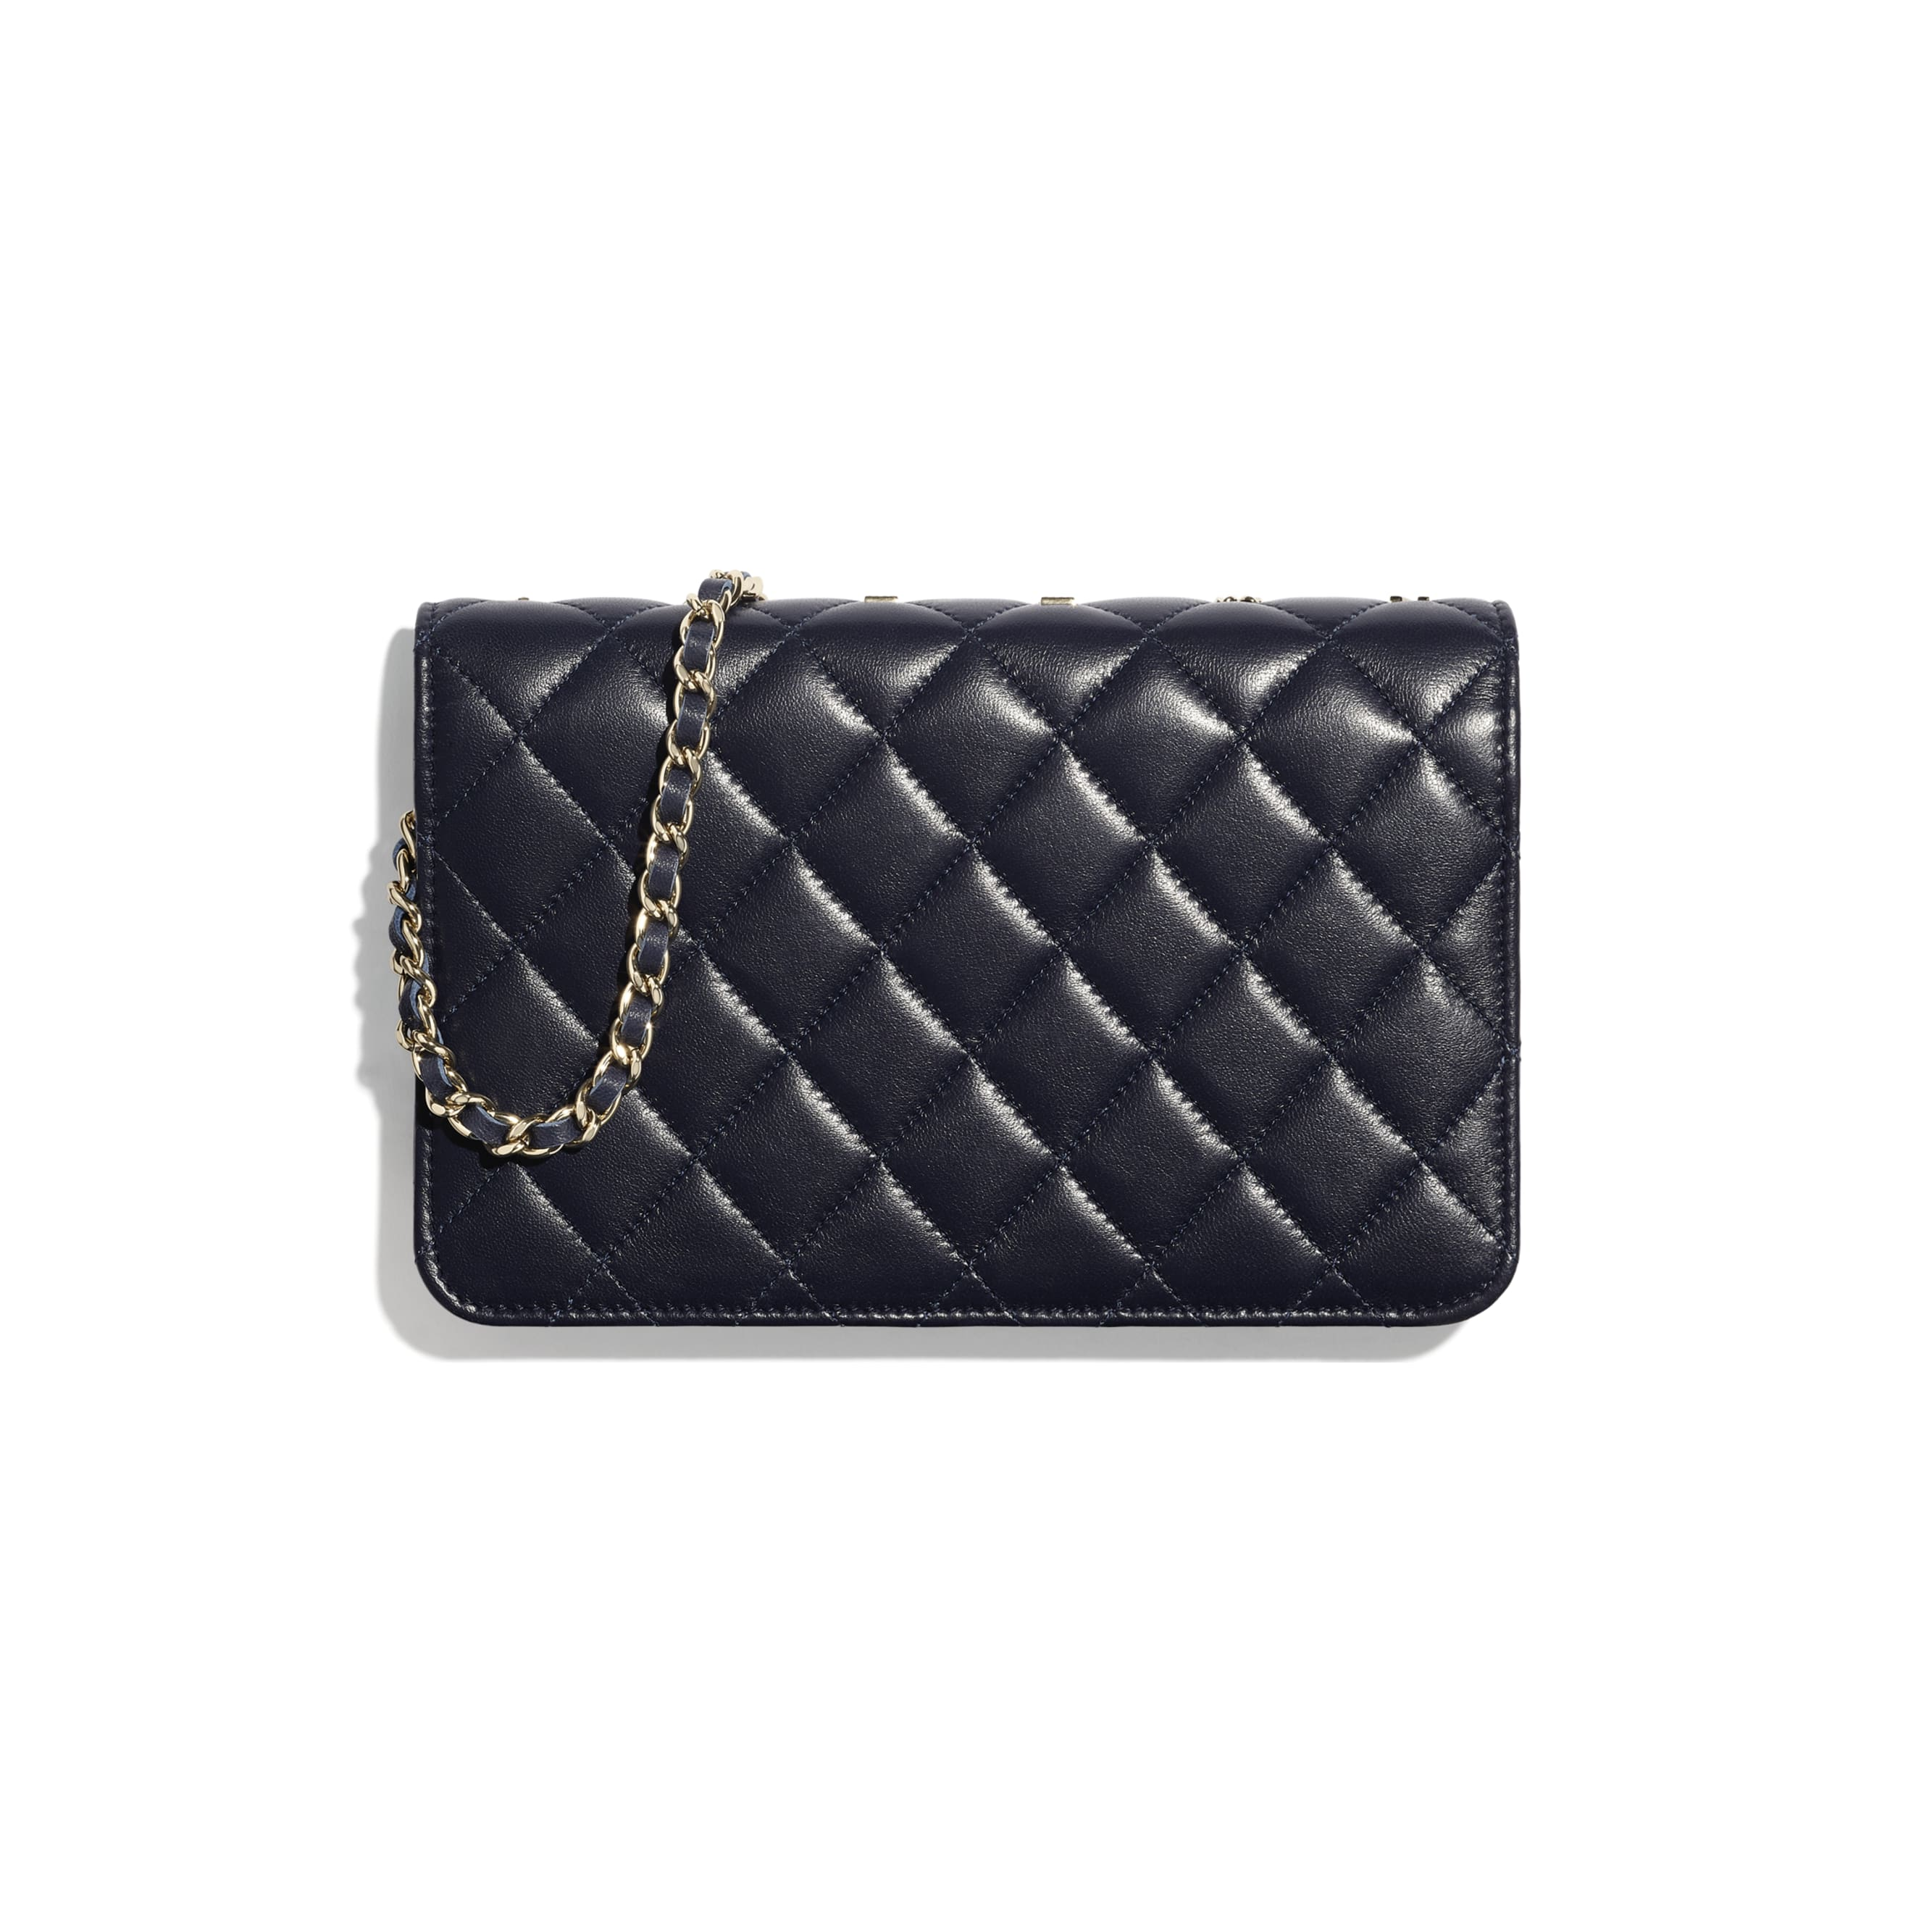 Wallet On Chain - Navy Blue - Lambskin, Charms & Gold-Tone Metal - CHANEL - Alternative view - see standard sized version